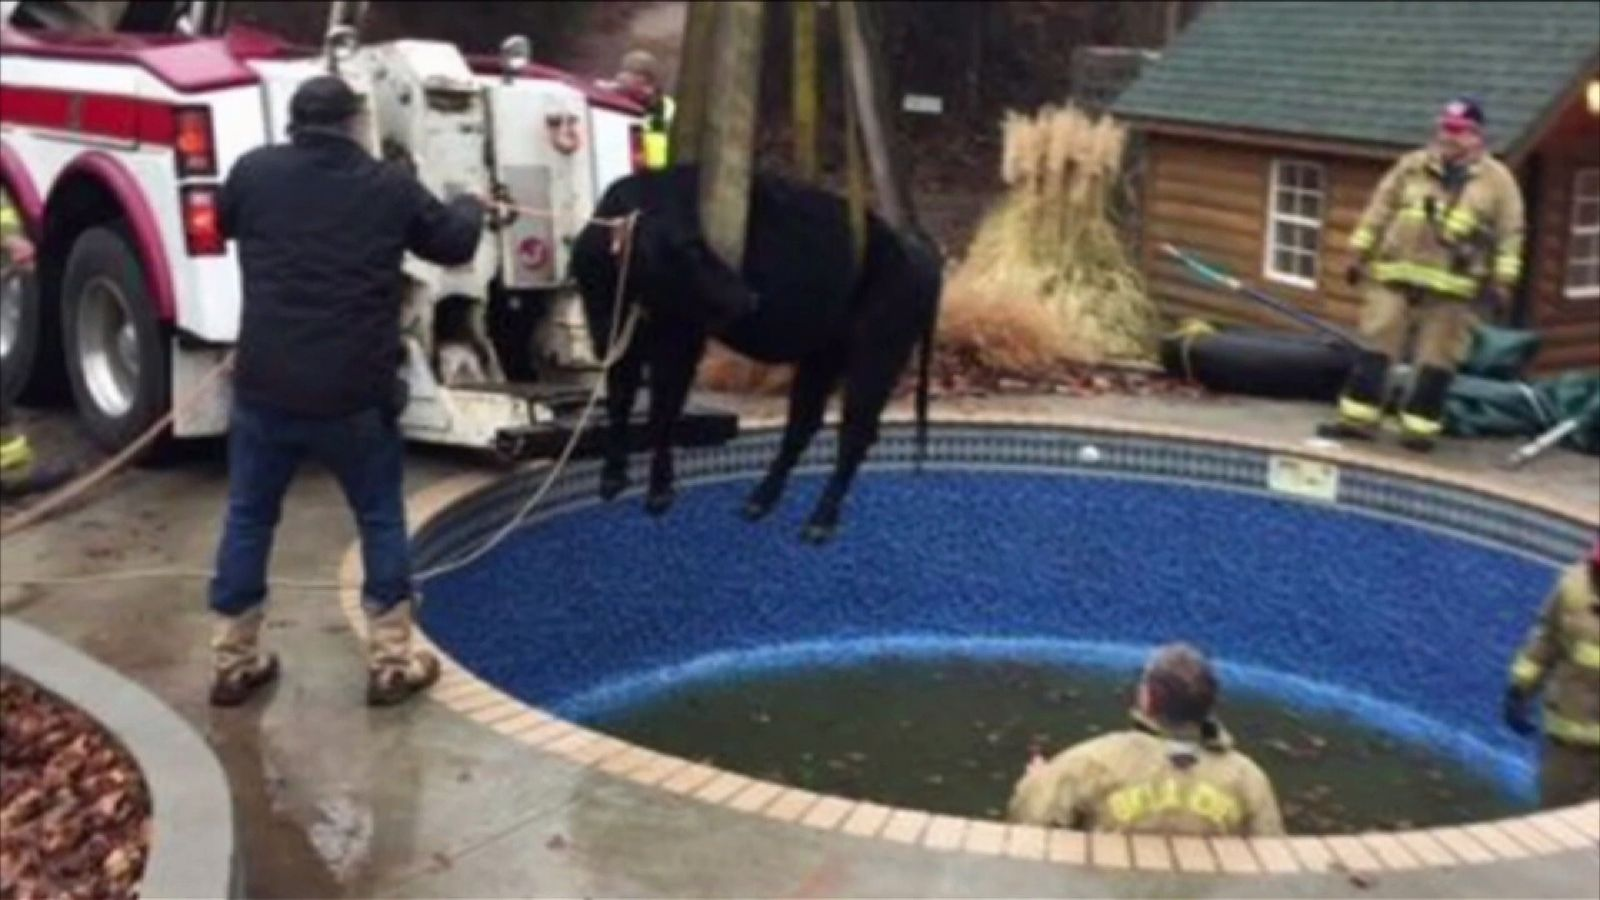 Cow lifted to safety from a domestic pool in Oklahoma City